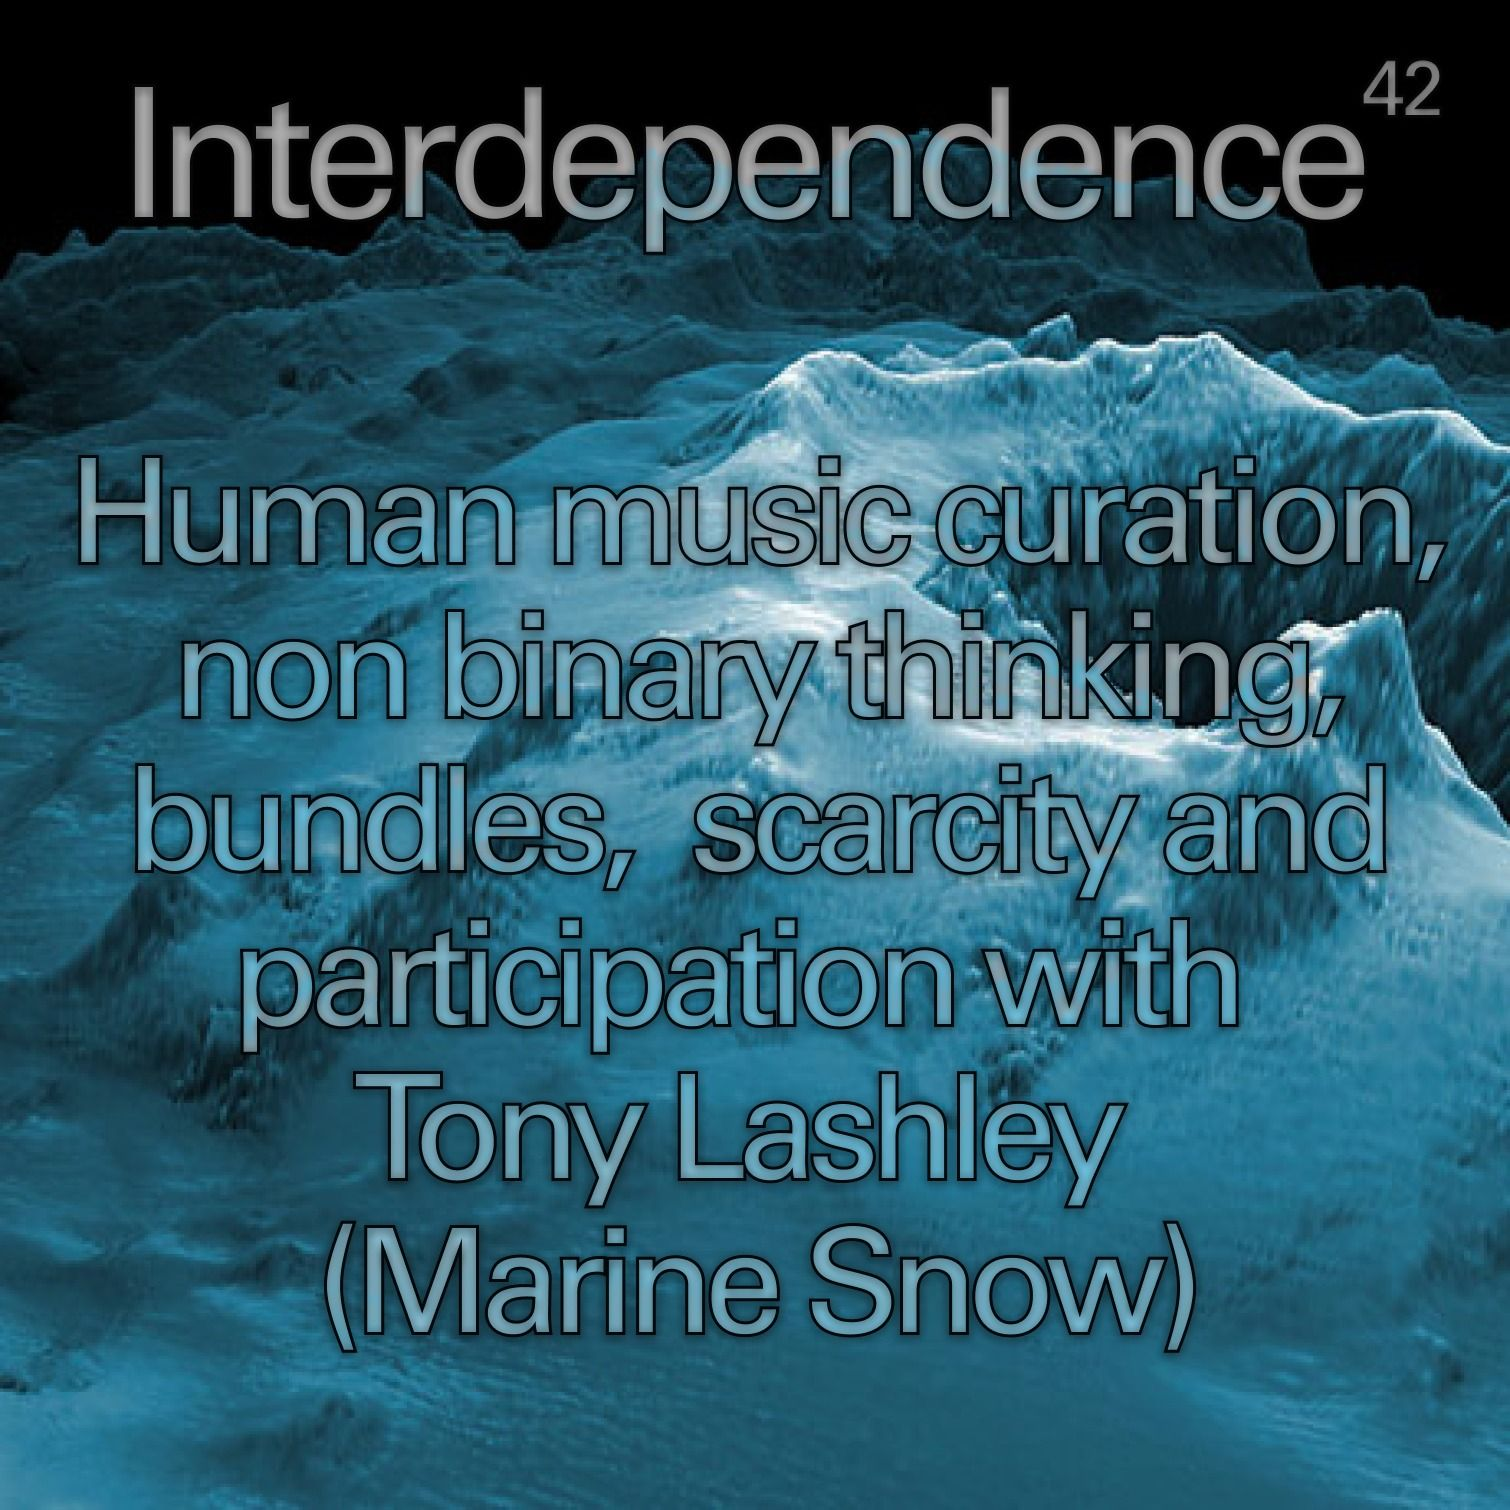 Human music curation, non binary thinking, bundles, scarcity and participation with Tony Lashley (Marine Snow)